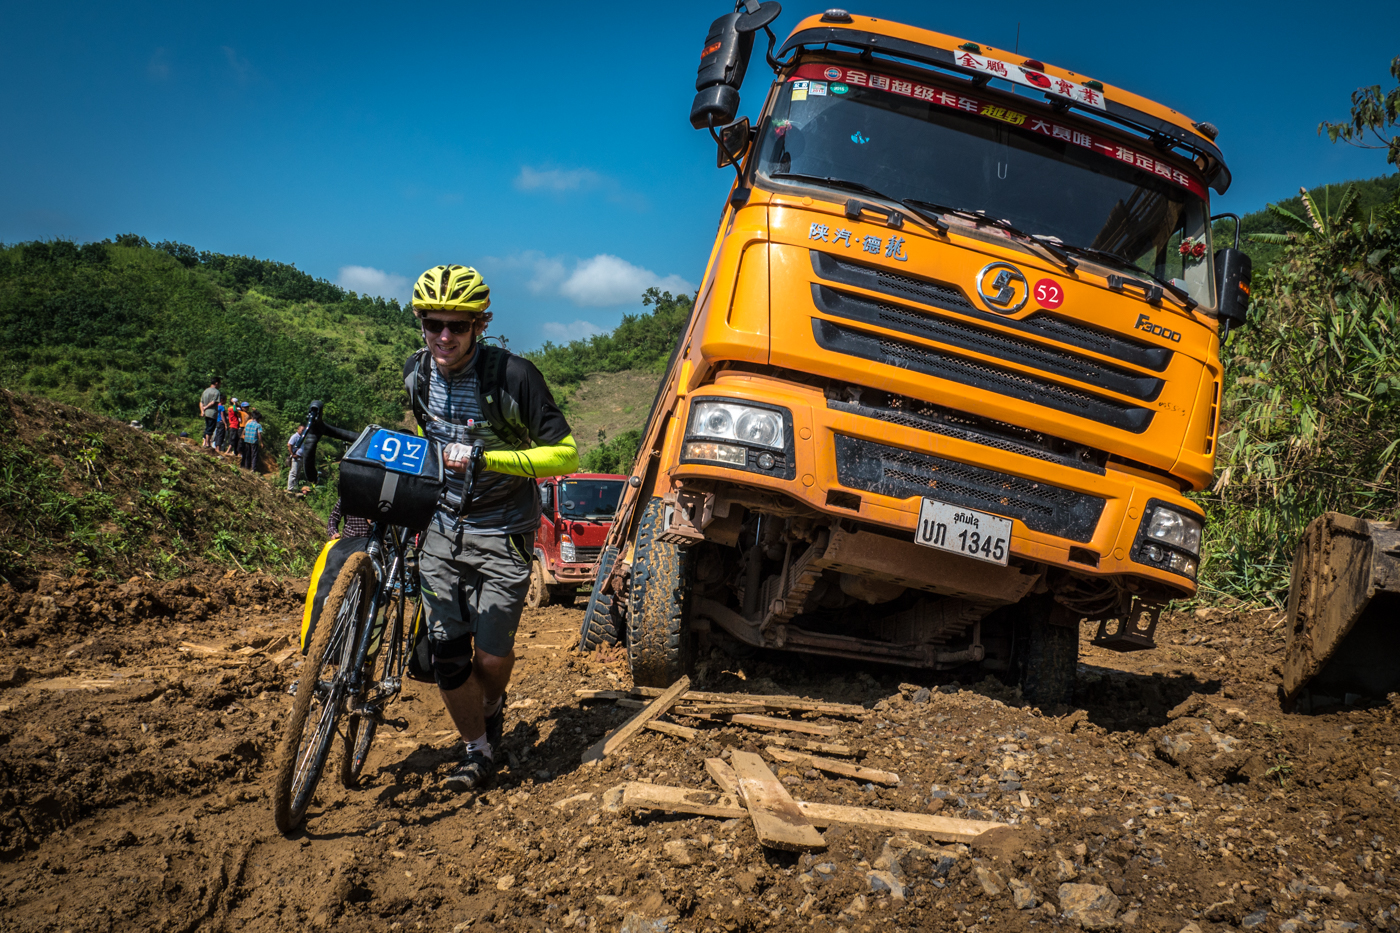 Kyle pushes through the muck alongside Chinese trucks. Photo: Will Stauffer Norris